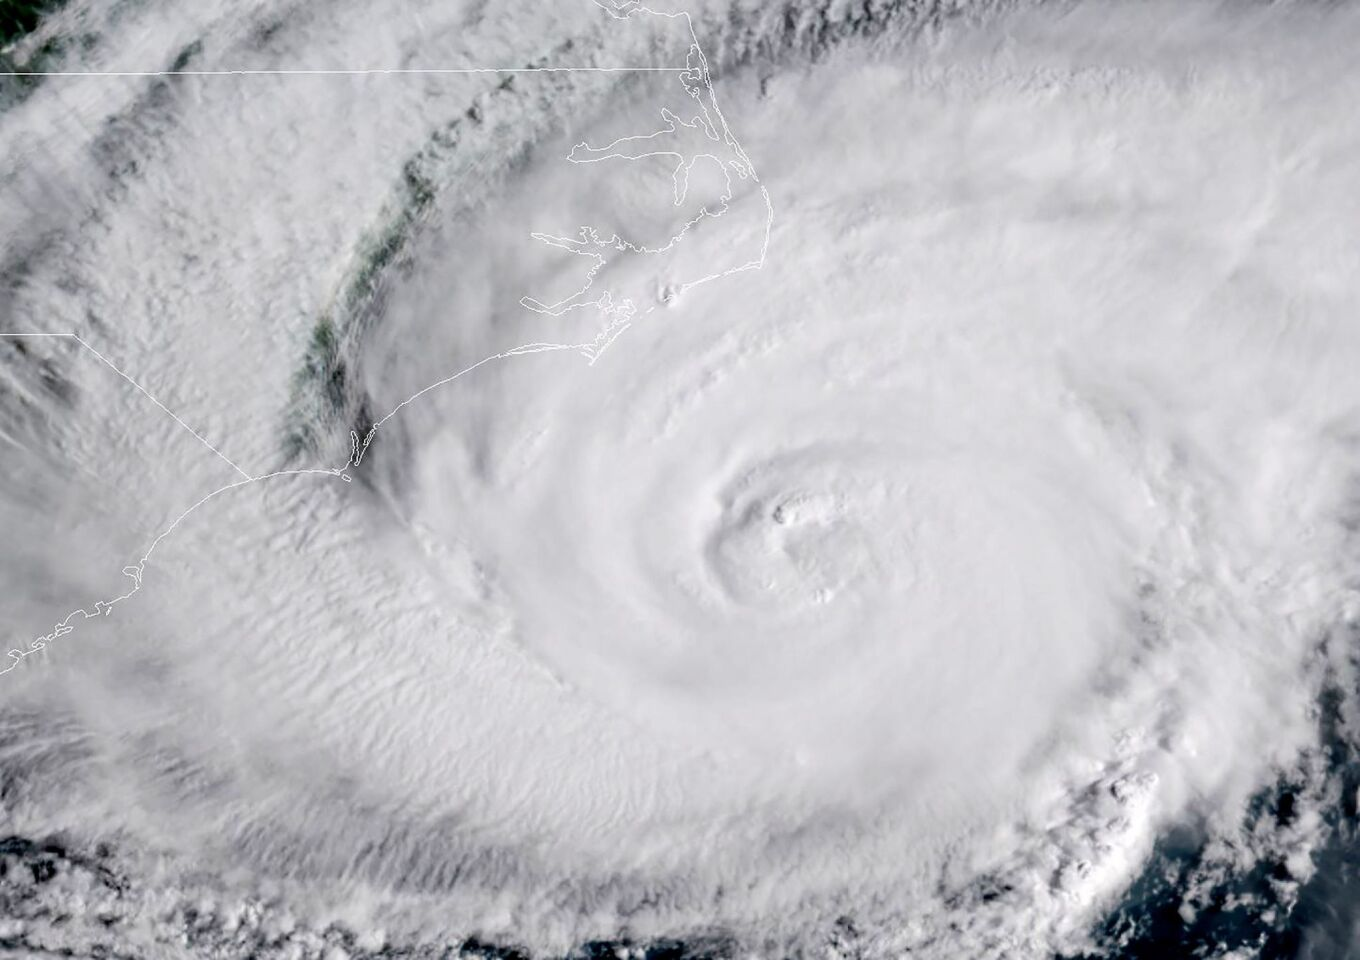 """This NOAA/RAMMB satellite image taken at 13:15 UTC on September 13, 2018, shows Hurricane Florence beginning to hit the US east coast. - Florence edged closer to the east coast of the US Thursday, with tropical-force winds and rain already lashing barrier islands just off the North Carolina mainland. The huge storm weakened to a Category 2 hurricane overnight, but forecasters warned that it still packed a dangerous punch, 110 mile-an-hour (175 kph) winds and torrential rains. (Photo by Jose ROMERO / NOAA/RAMMB / AFP) / RESTRICTED TO EDITORIAL USE - MANDATORY CREDIT """"AFP PHOTO / NOAA/RAMMB"""" - NO MARKETING NO ADVERTISING CAMPAIGNS - DISTRIBUTED AS A SERVICE TO CLIENTSJOSE"""